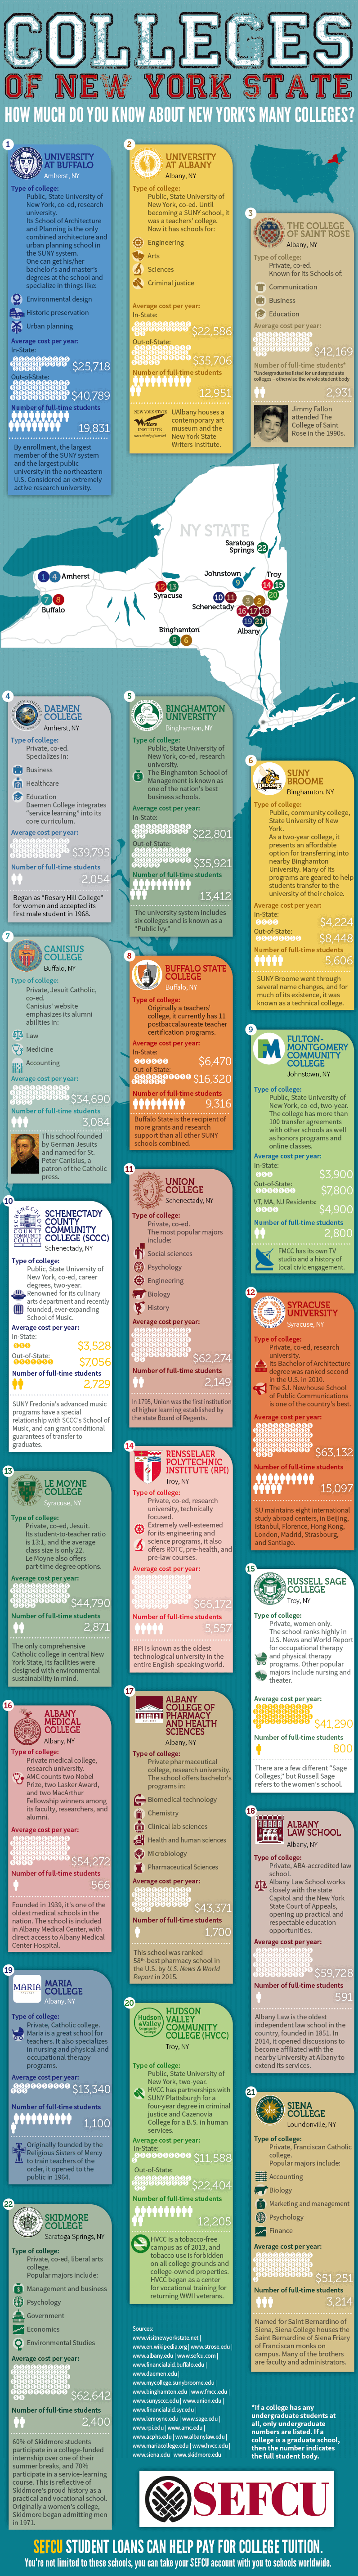 Colleges of New York State Infographic